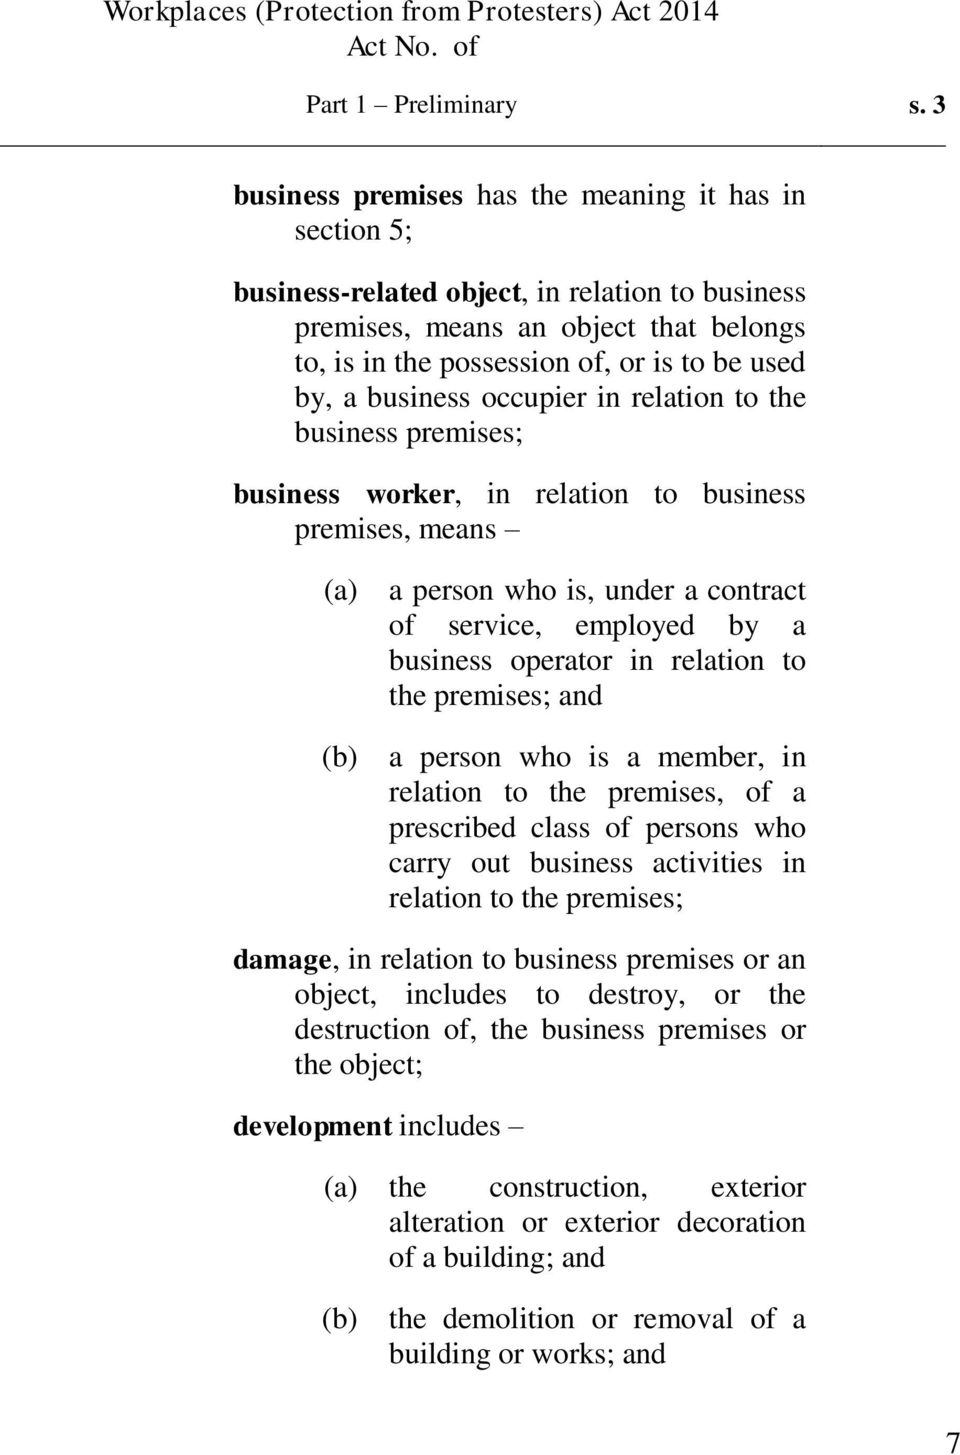 business occupier in relation to the business premises; business worker, in relation to business premises, means a person who is, under a contract of service, employed by a business operator in